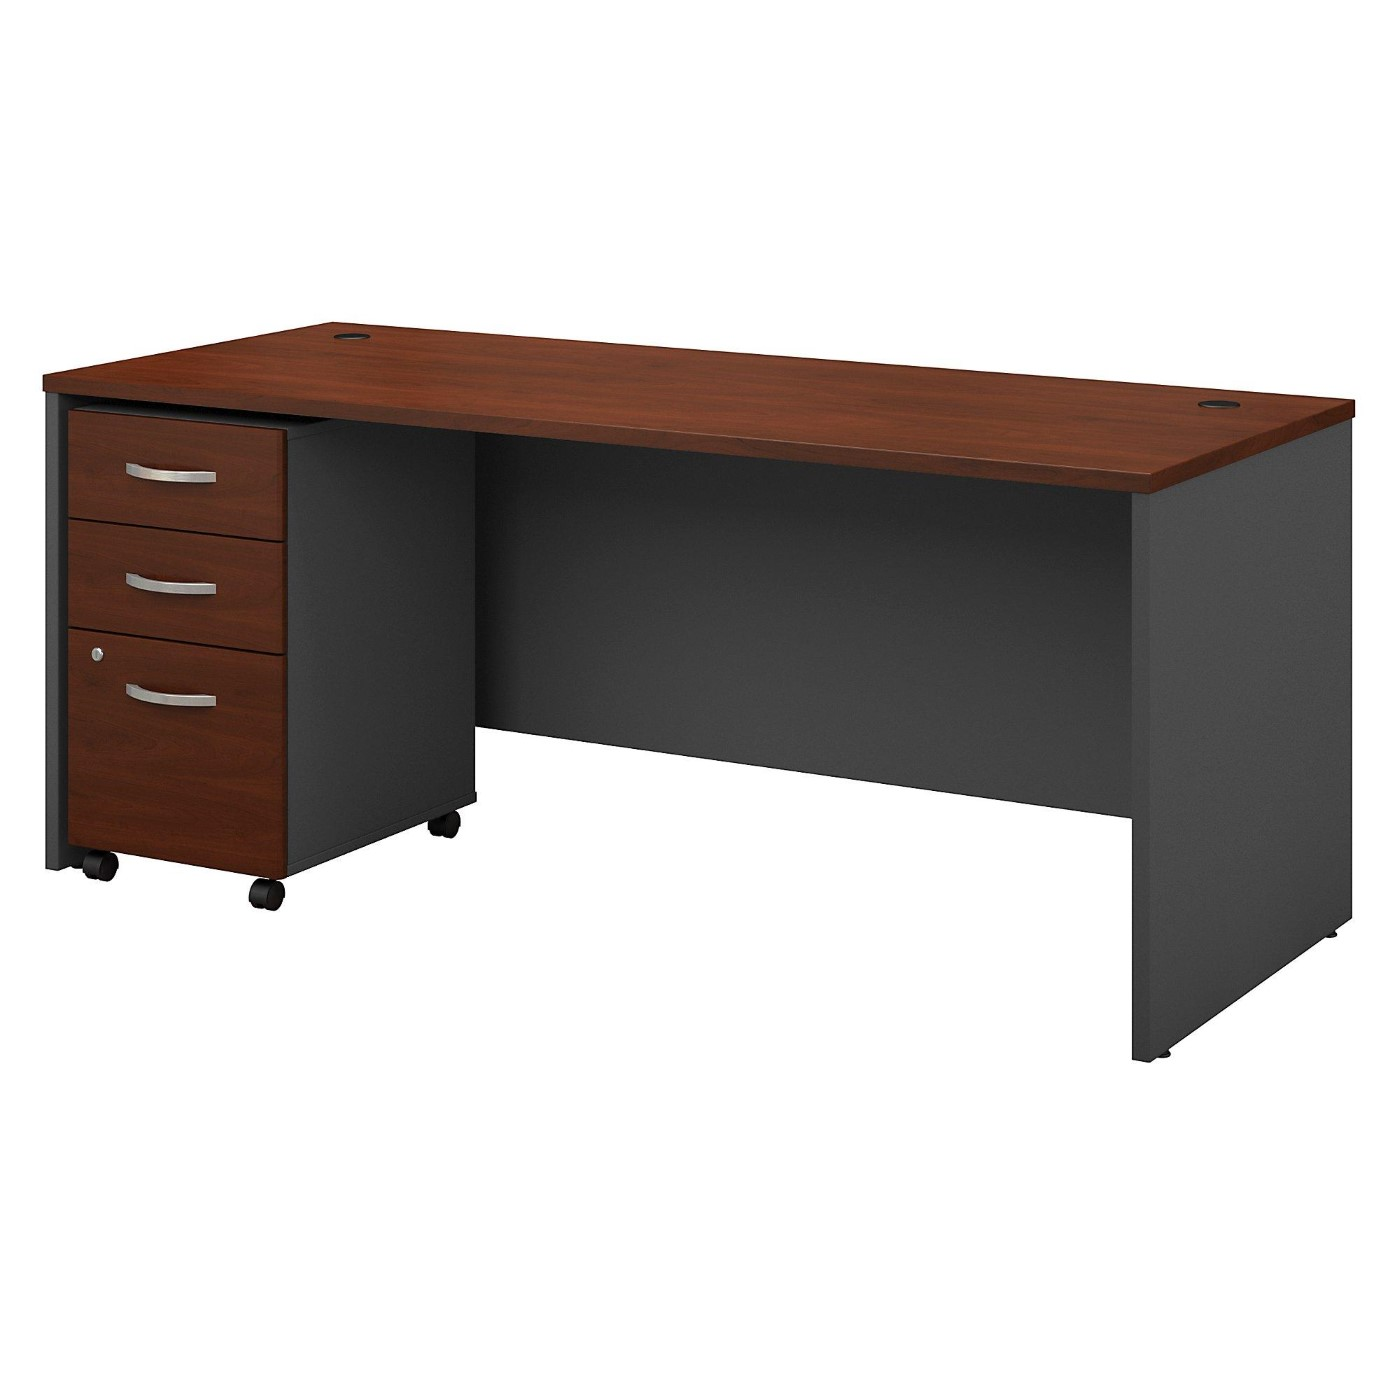 BUSH BUSINESS FURNITURE SERIES C 72W X 30D OFFICE DESK WITH MOBILE FILE CABINET. FREE SHIPPING</font></b></font></b>&#x1F384<font color=red><b>ERGONOMICHOME HOLIDAY SALE - ENDS DEC. 17, 2019</b></font>&#x1F384